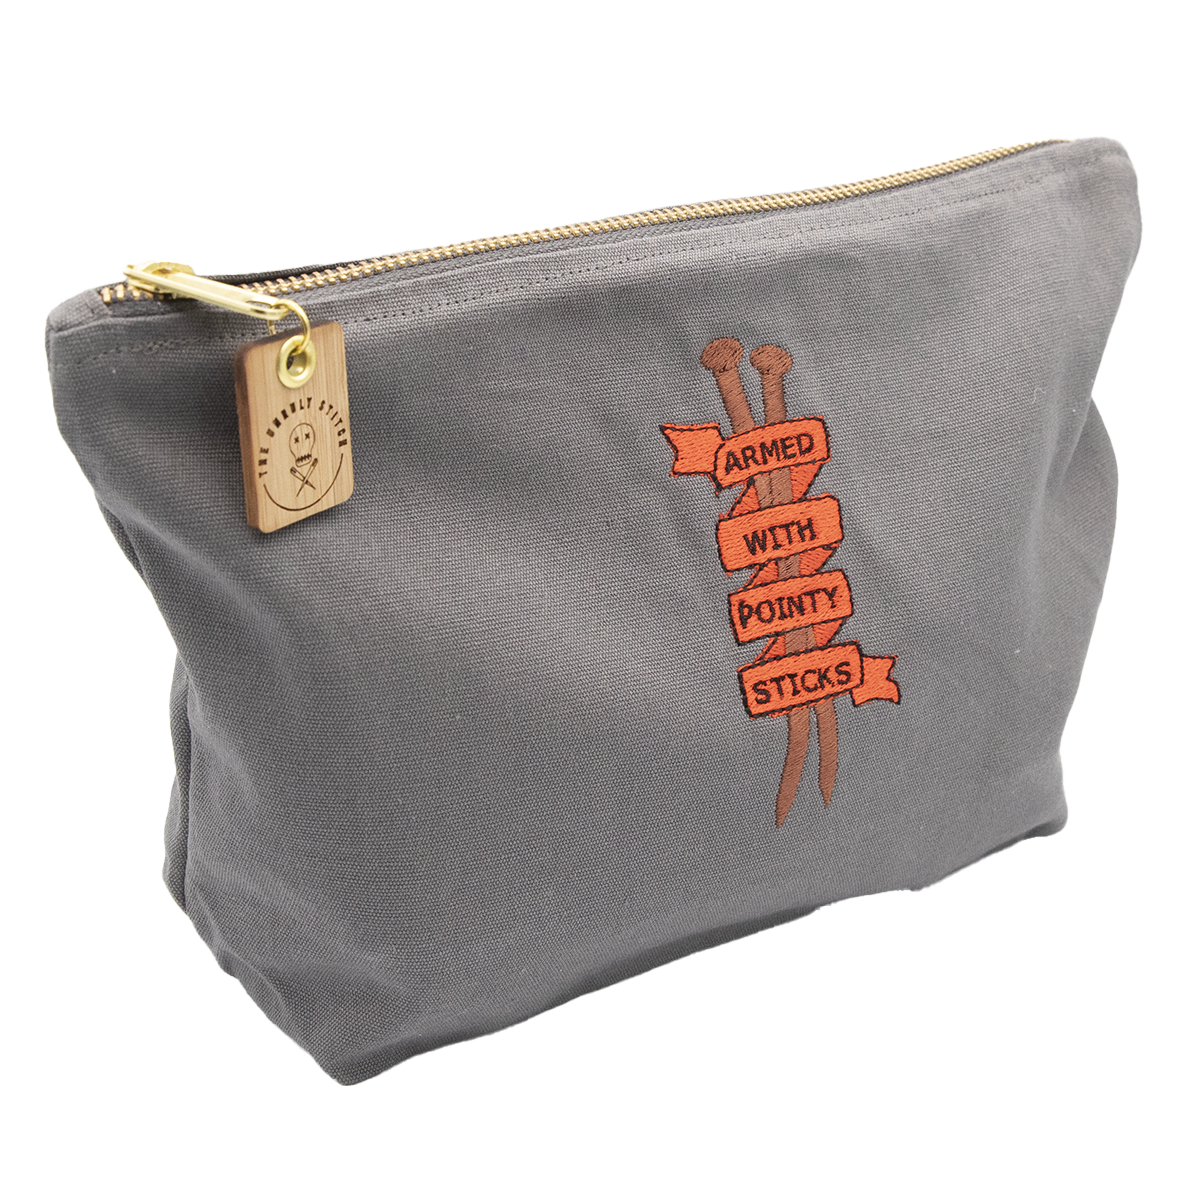 """Zipped cotton pouch bag embroidered with a banner, knitting pins and the text """"armed with pointy sticks"""""""